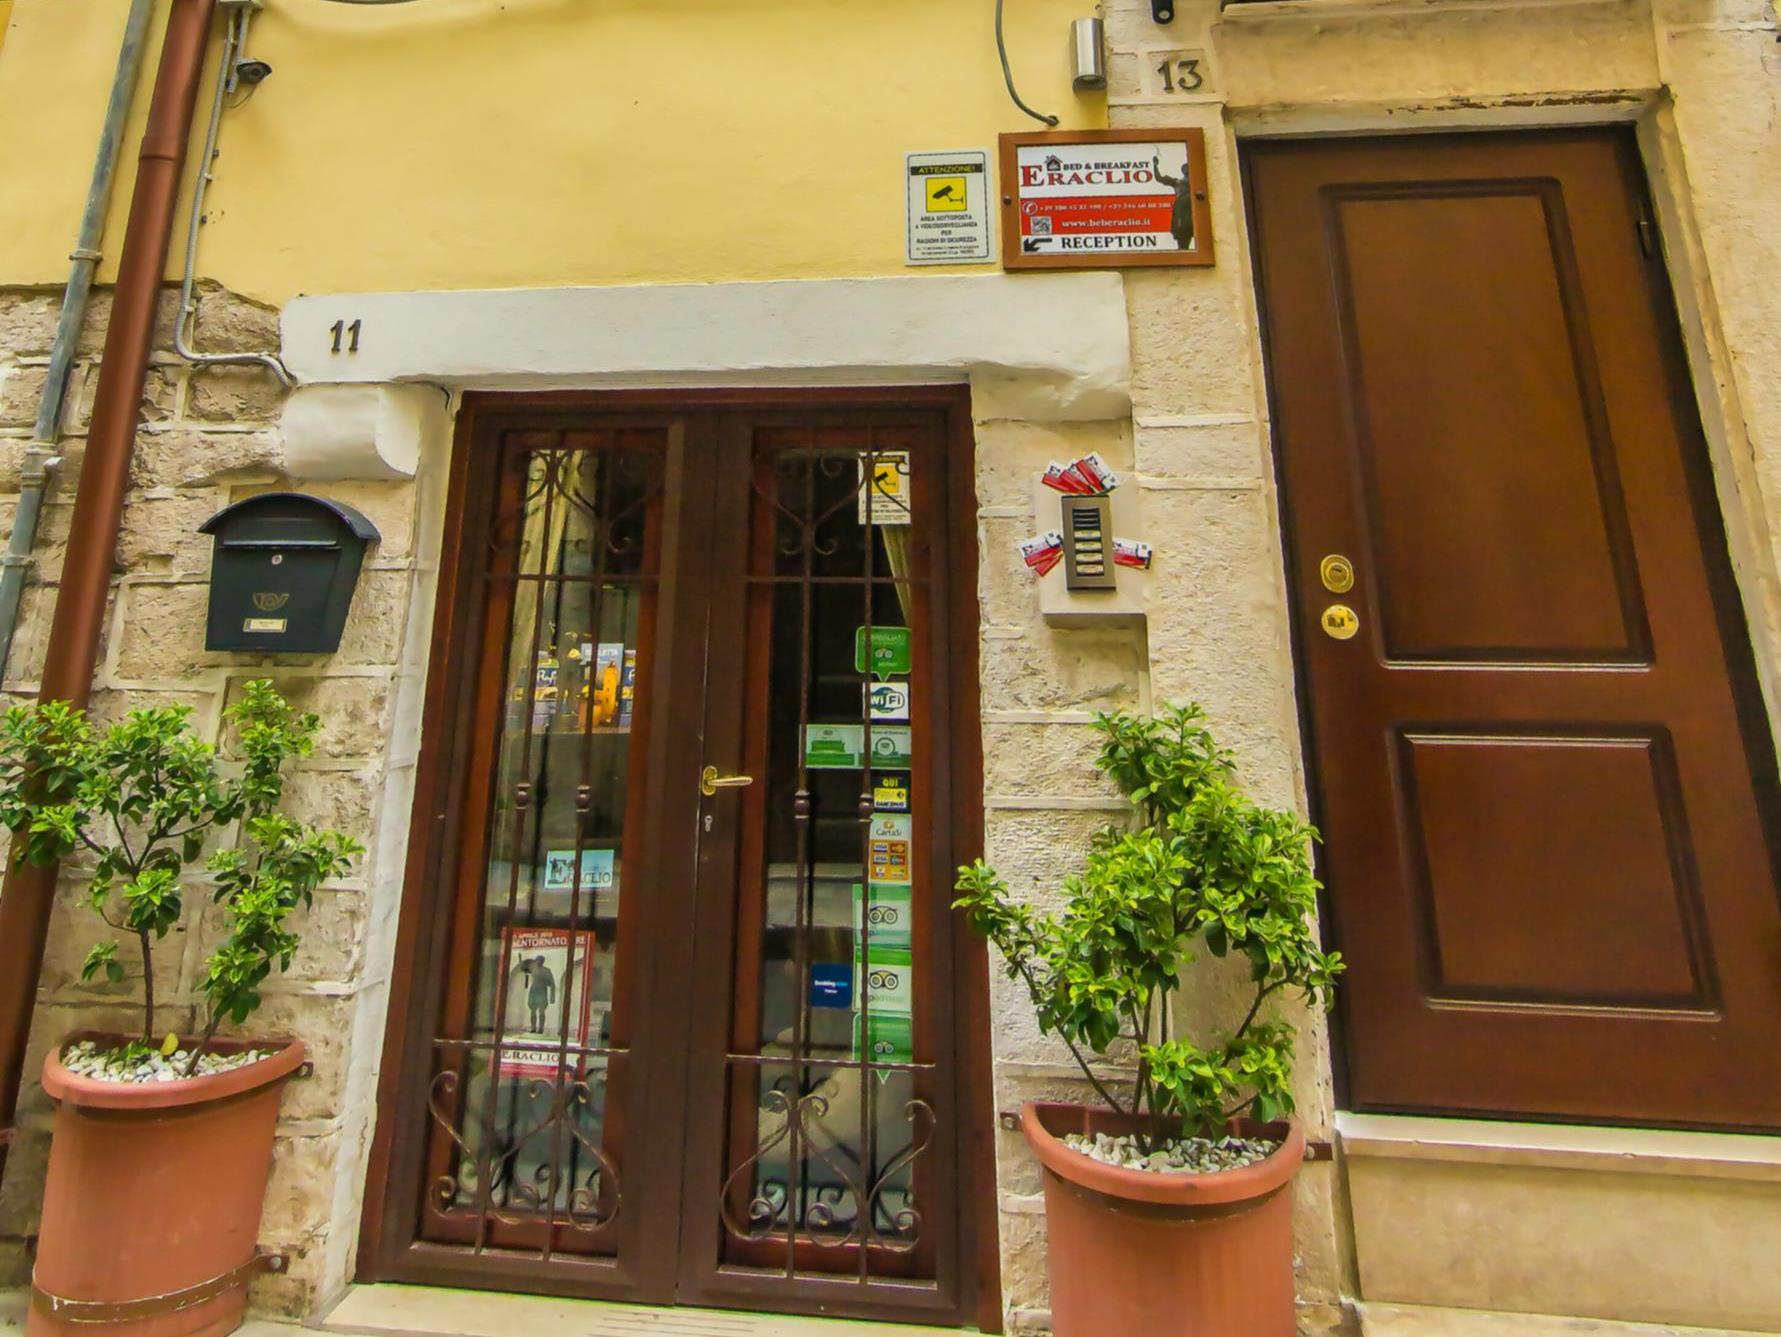 Bed and Breakfast Eraclio, Barletta-Andria-Trani